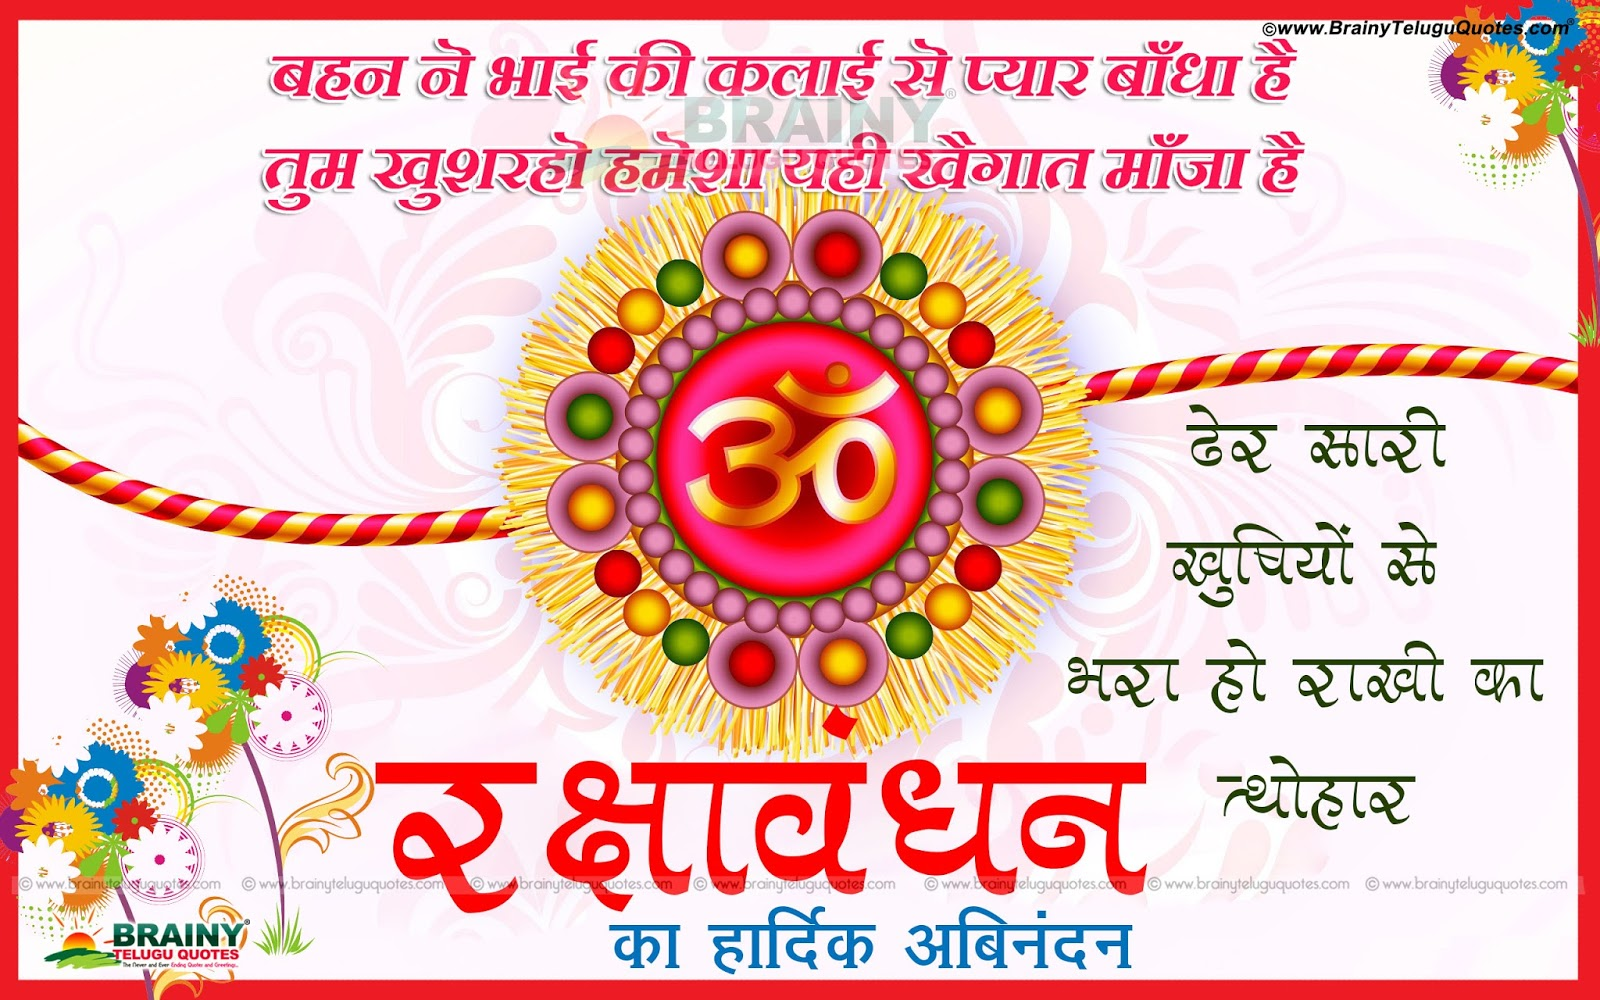 Rakhi hindi shayari with raksha bandhan greeting cards with quotes latest raksha bandhan inspiring sister sms in hindi font online raksha bandhan bands quotes greeting cards online inspiring sister sentiment hindi shayari kristyandbryce Image collections